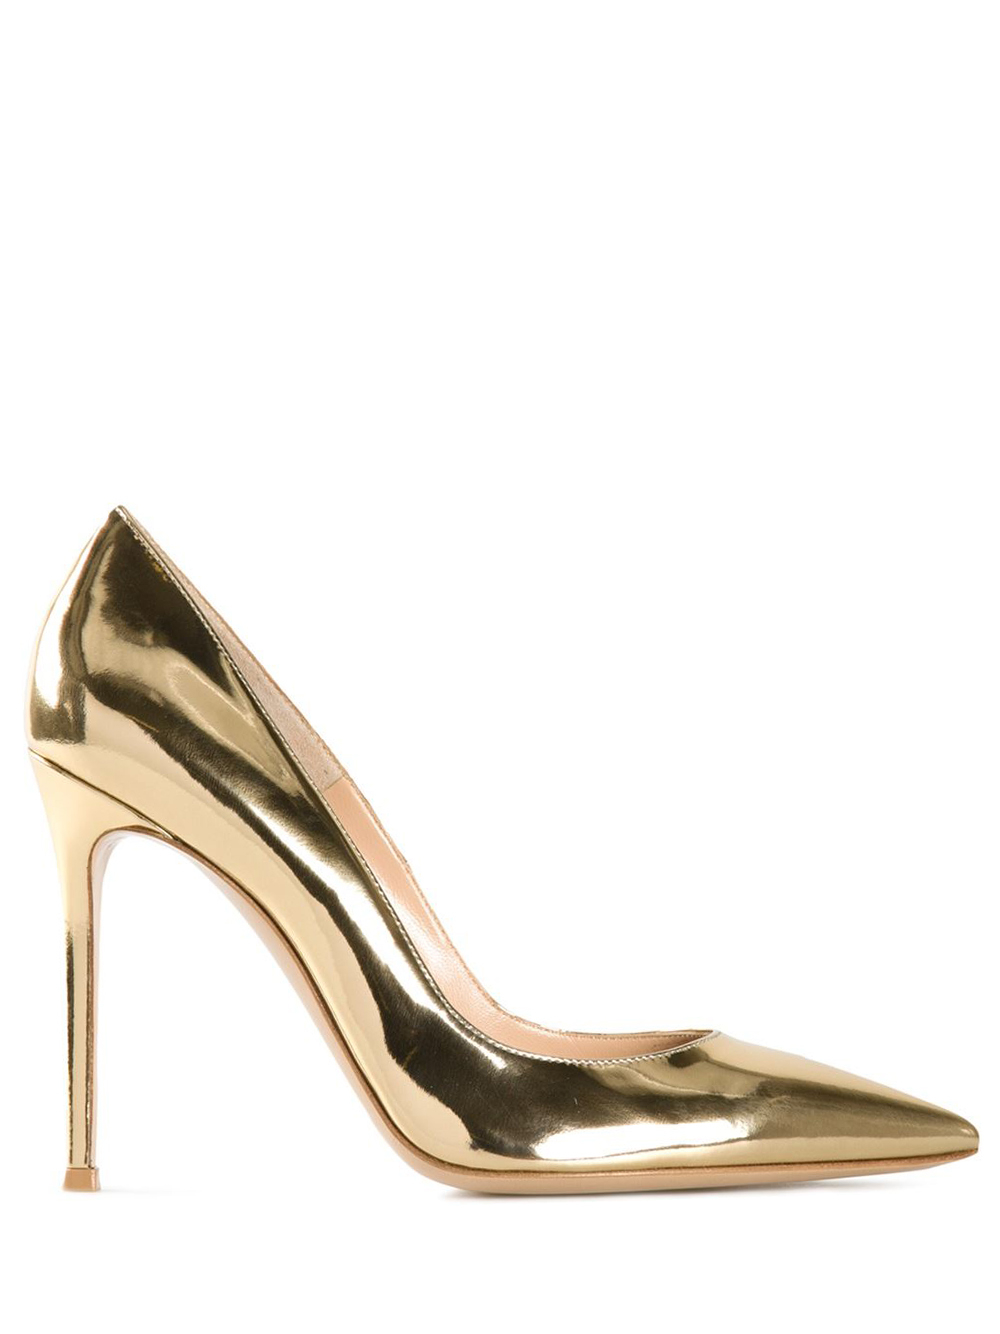 Black Suede Shoes With Gold Heel